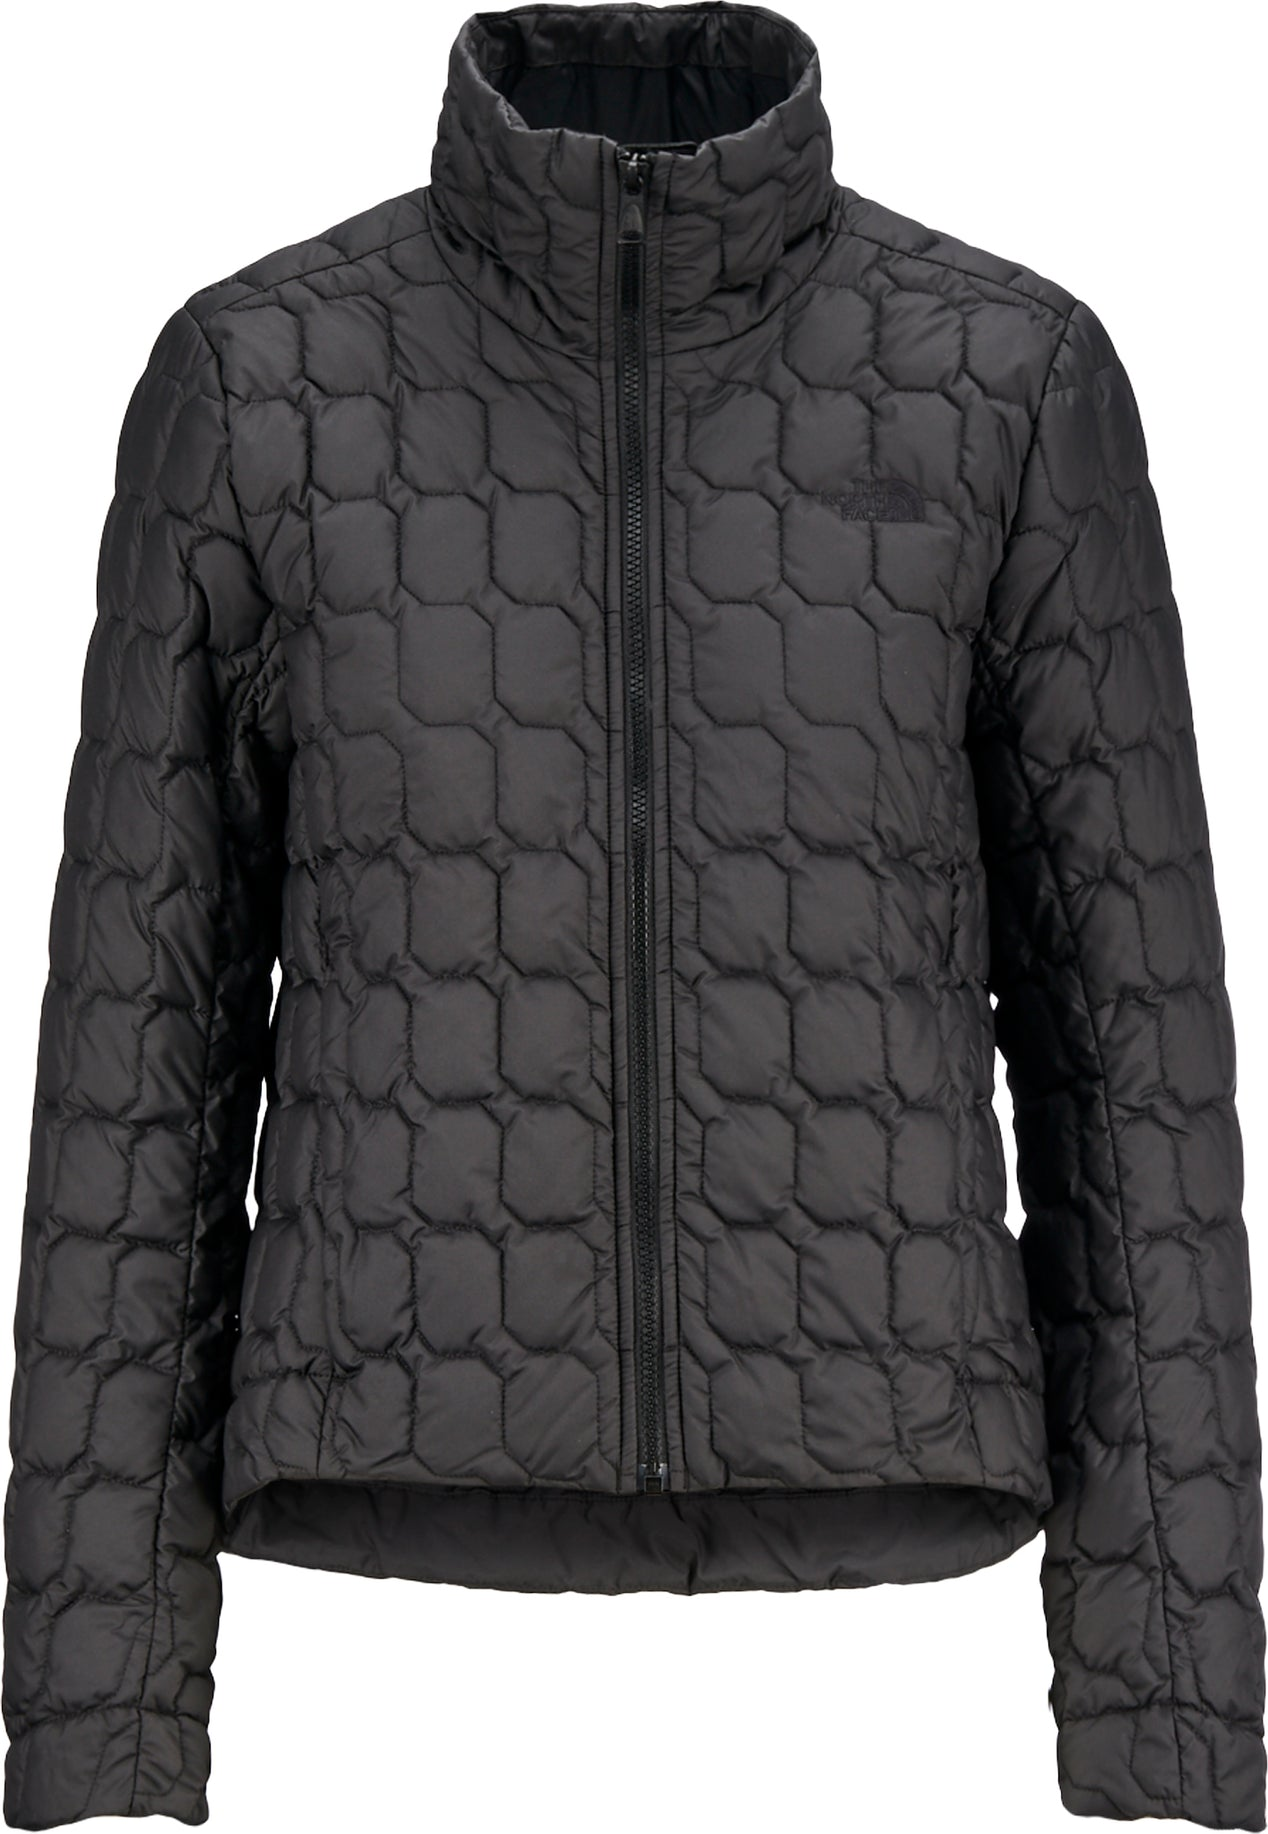 19ccaa19c Thermoball Crop Jacket - Women's